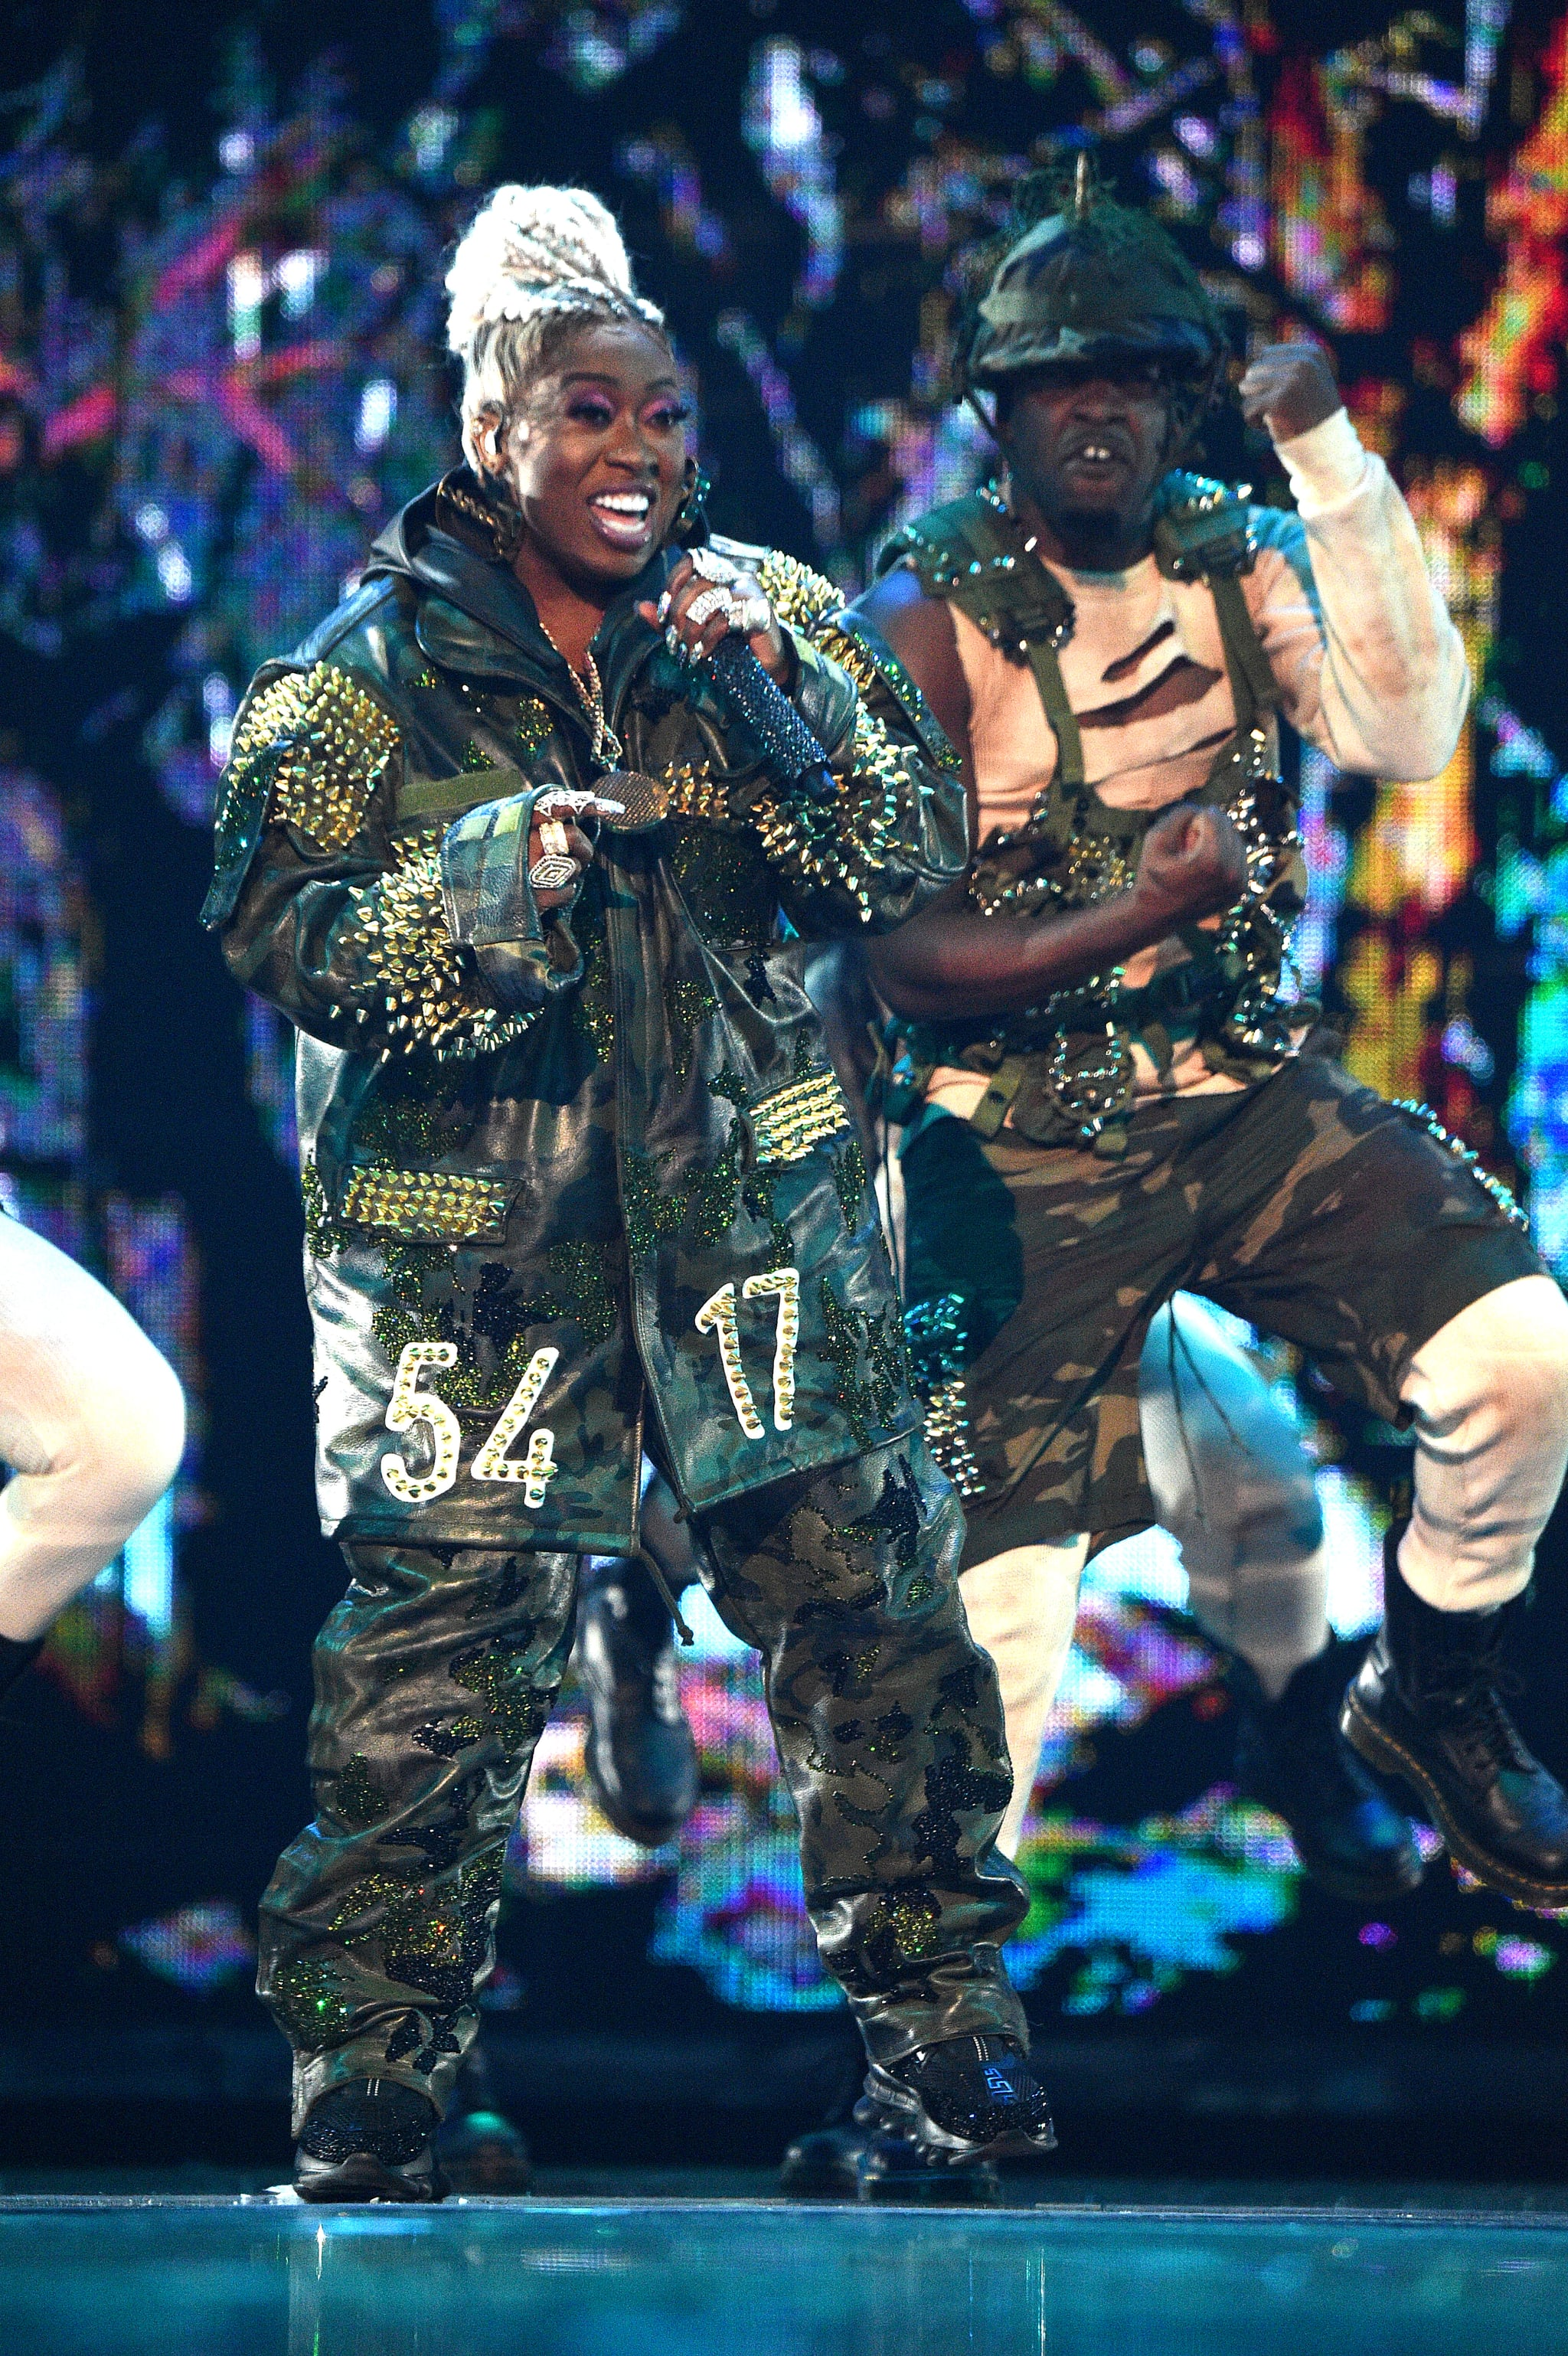 NEWARK, NEW JERSEY - AUGUST 26: Missy Elliott performs onstage during the 2019 MTV Video Music Awards at Prudential Center on August 26, 2019 in Newark, New Jersey. (Photo by Kevin Mazur/WireImage)